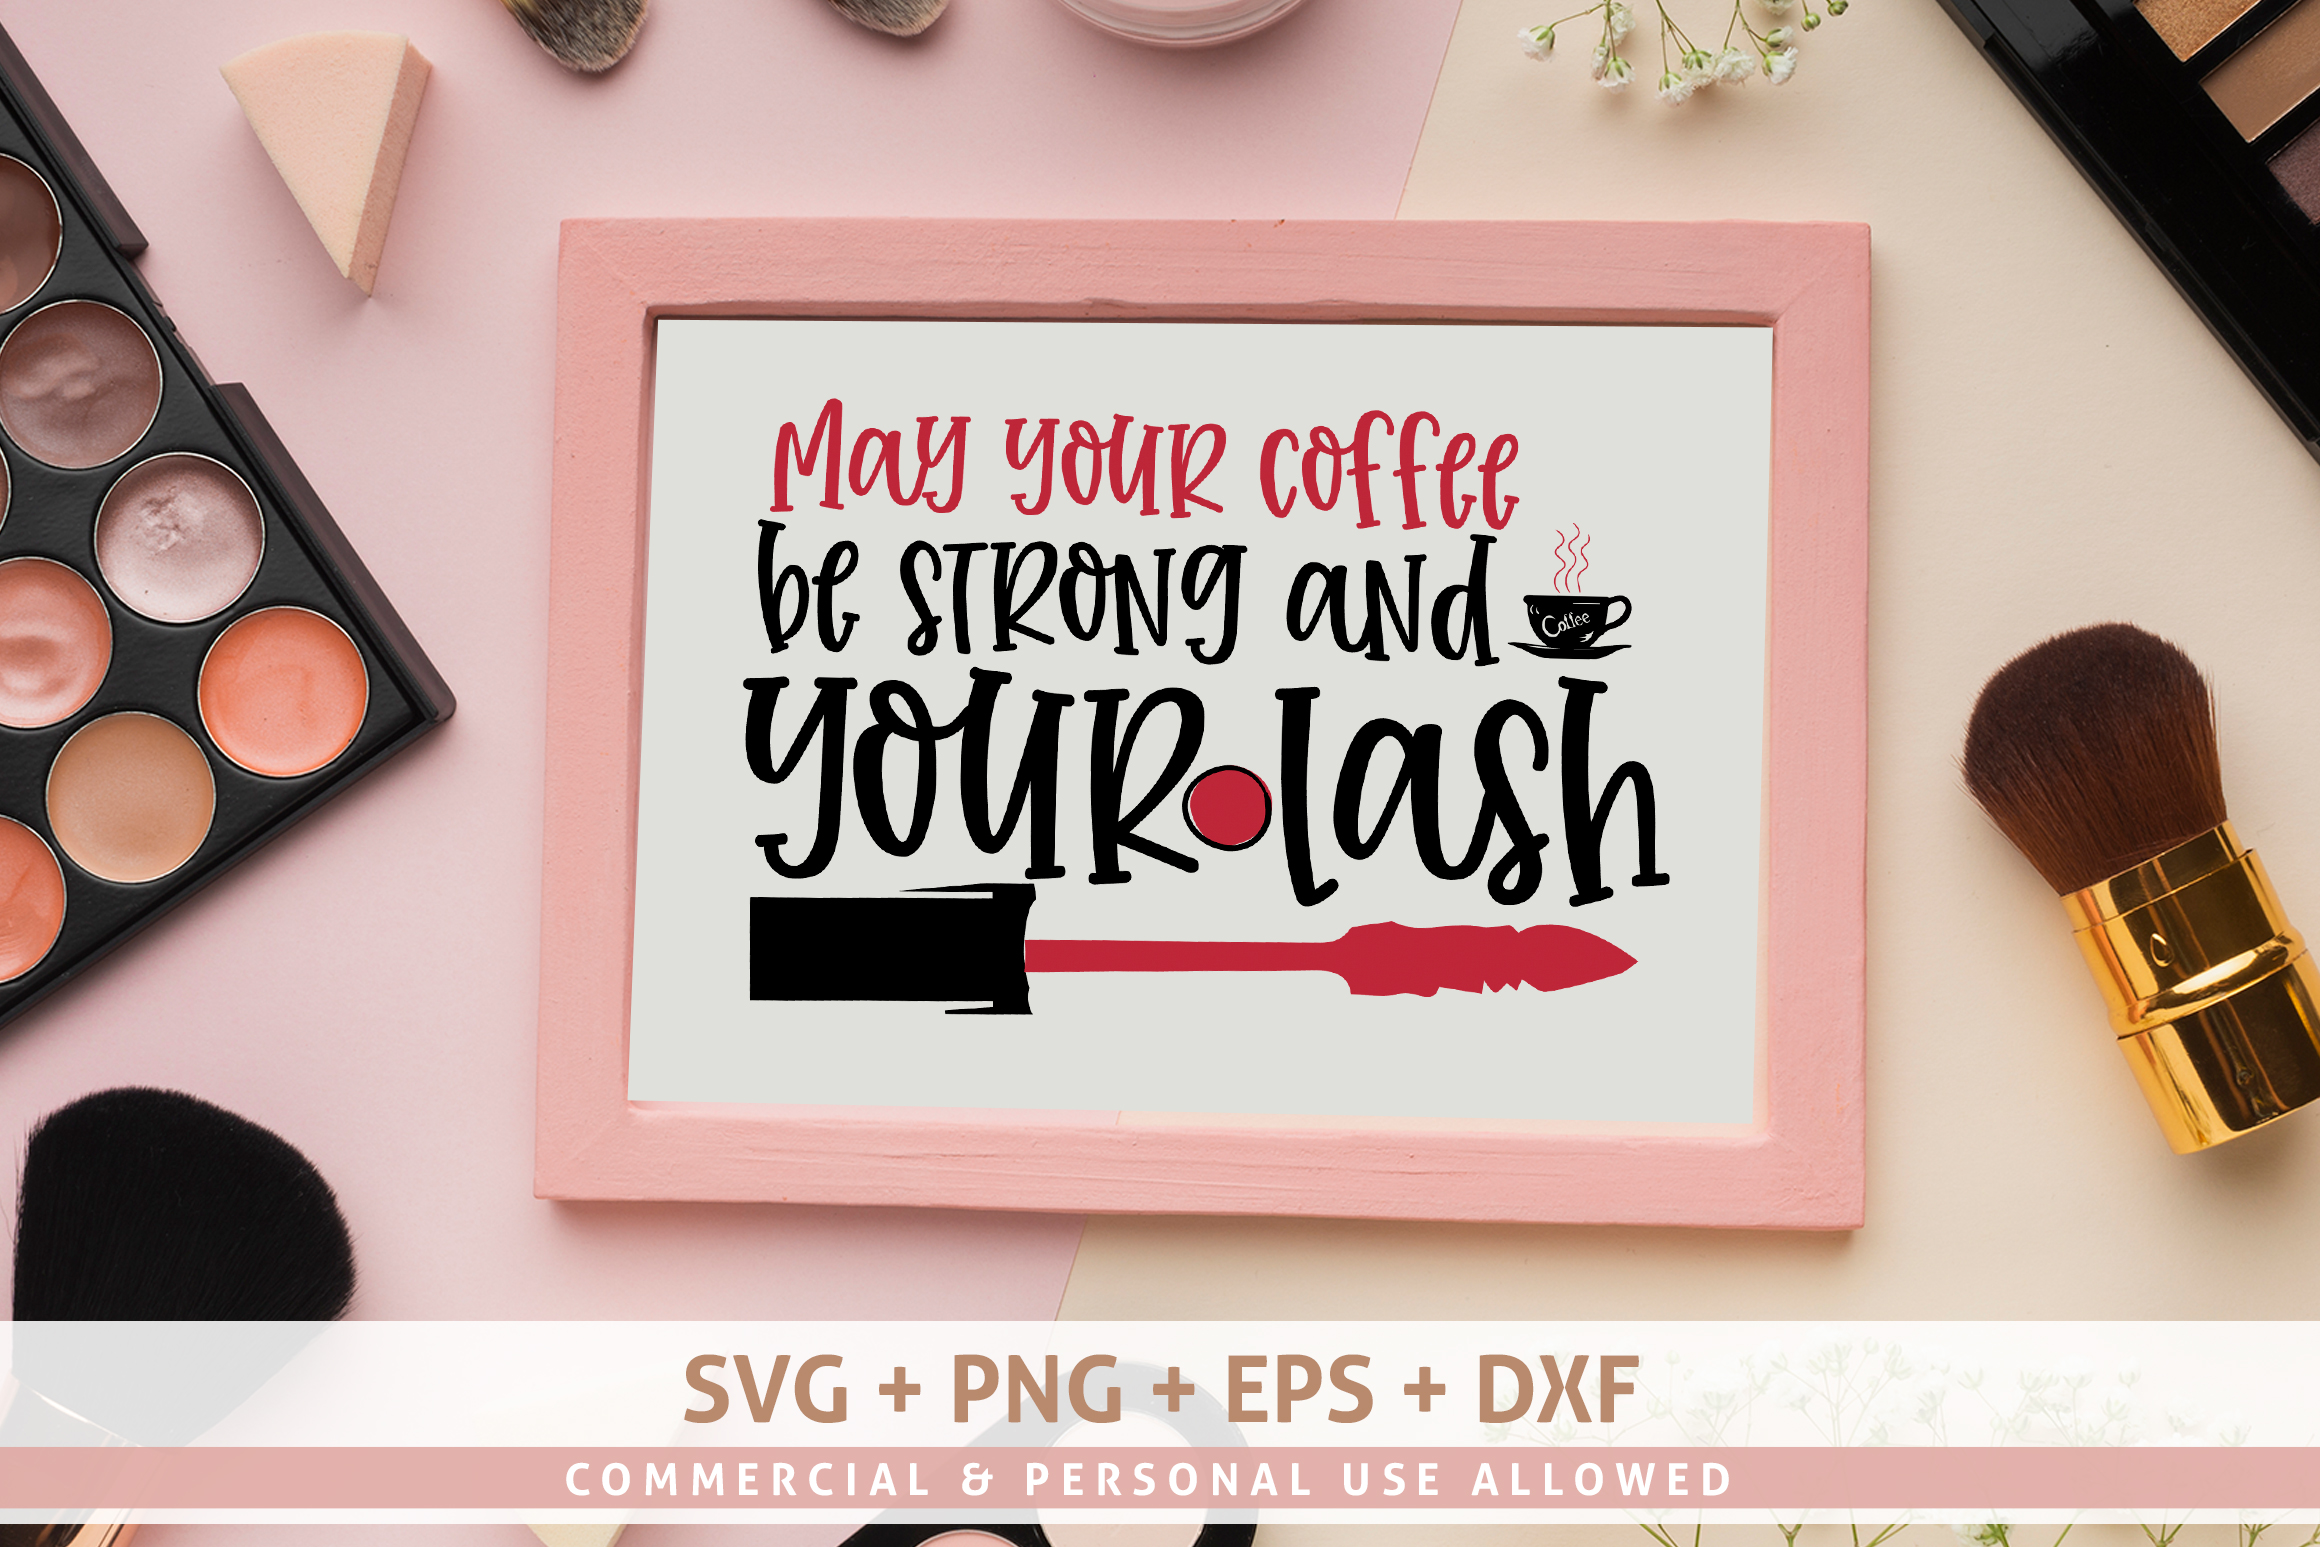 May your coffee be strong and your lash SVG Design example image 1